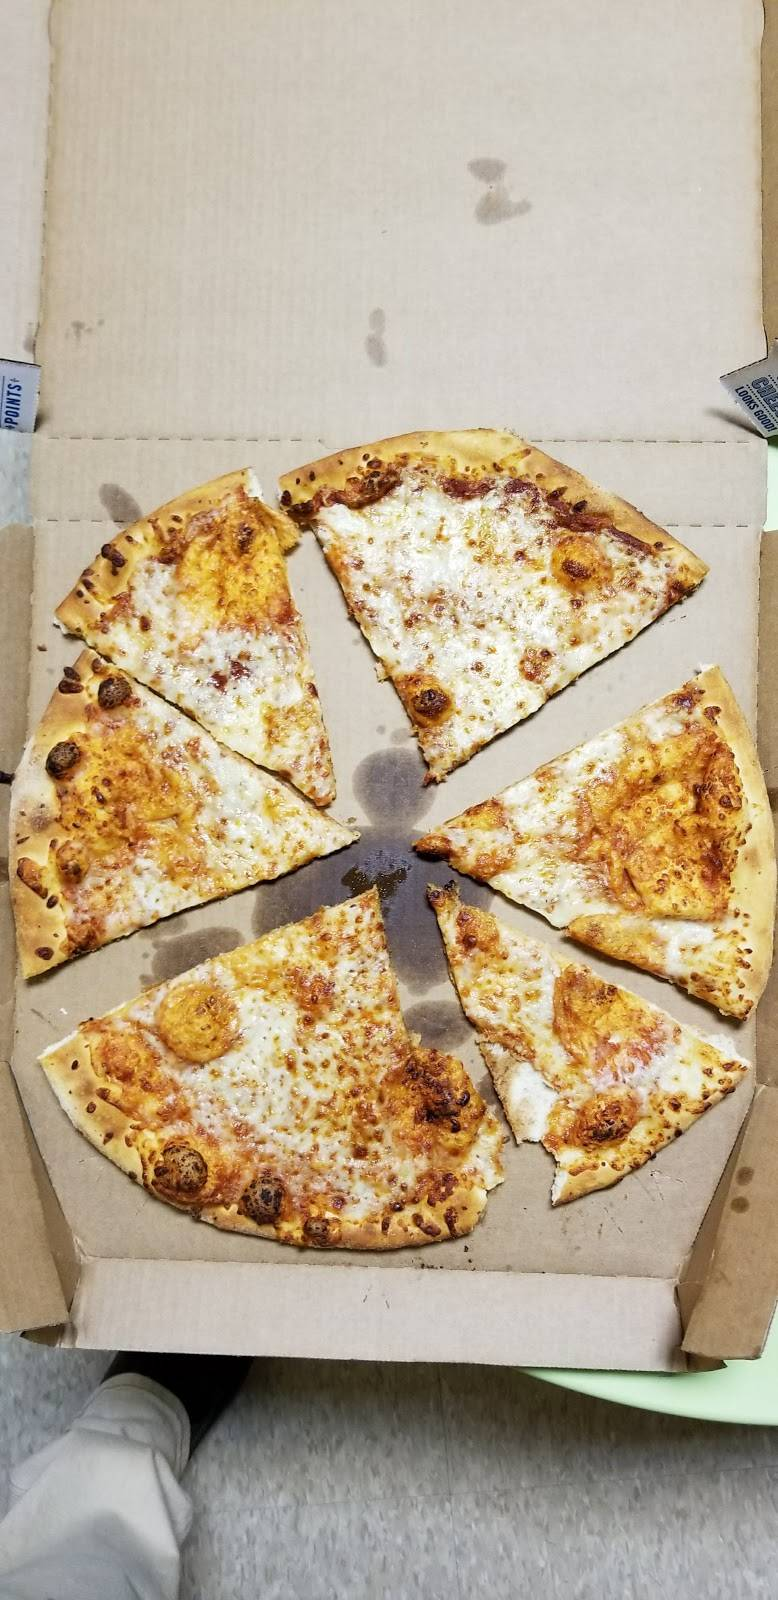 Dominos Pizza   meal delivery   5159 Waterway Dr, Dumfries, VA 22025, USA   7036703040 OR +1 703-670-3040